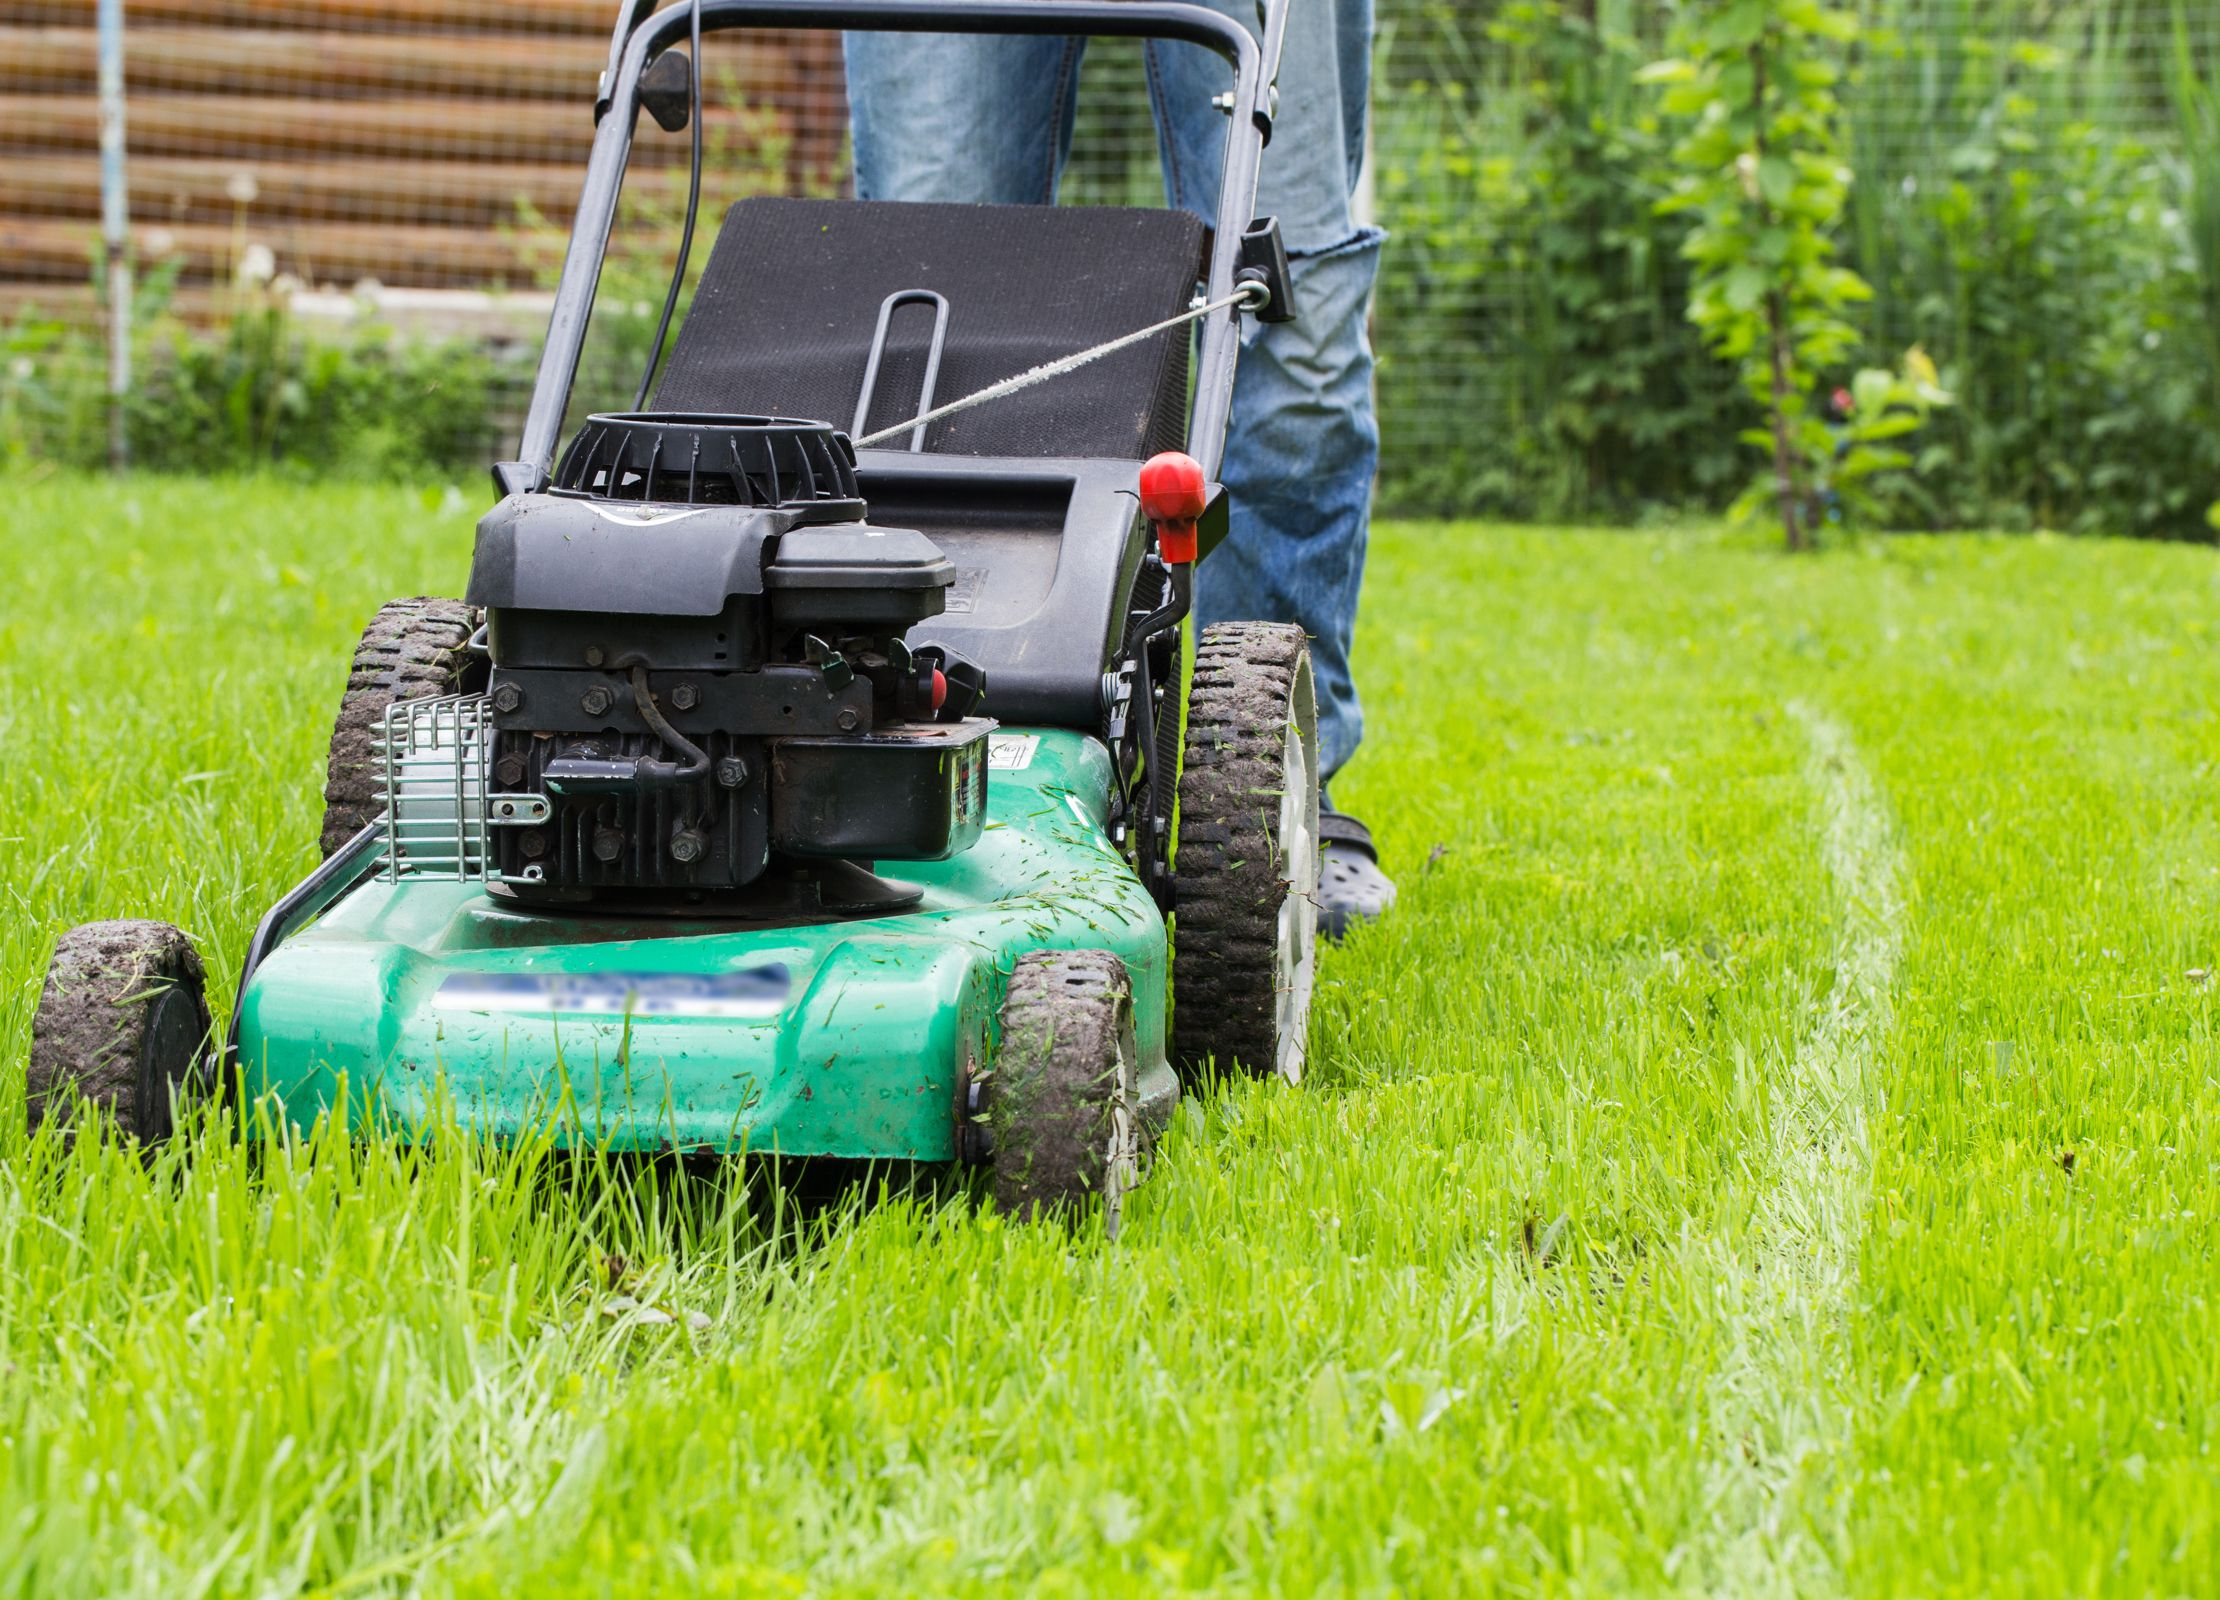 Lawnmower features to look out for